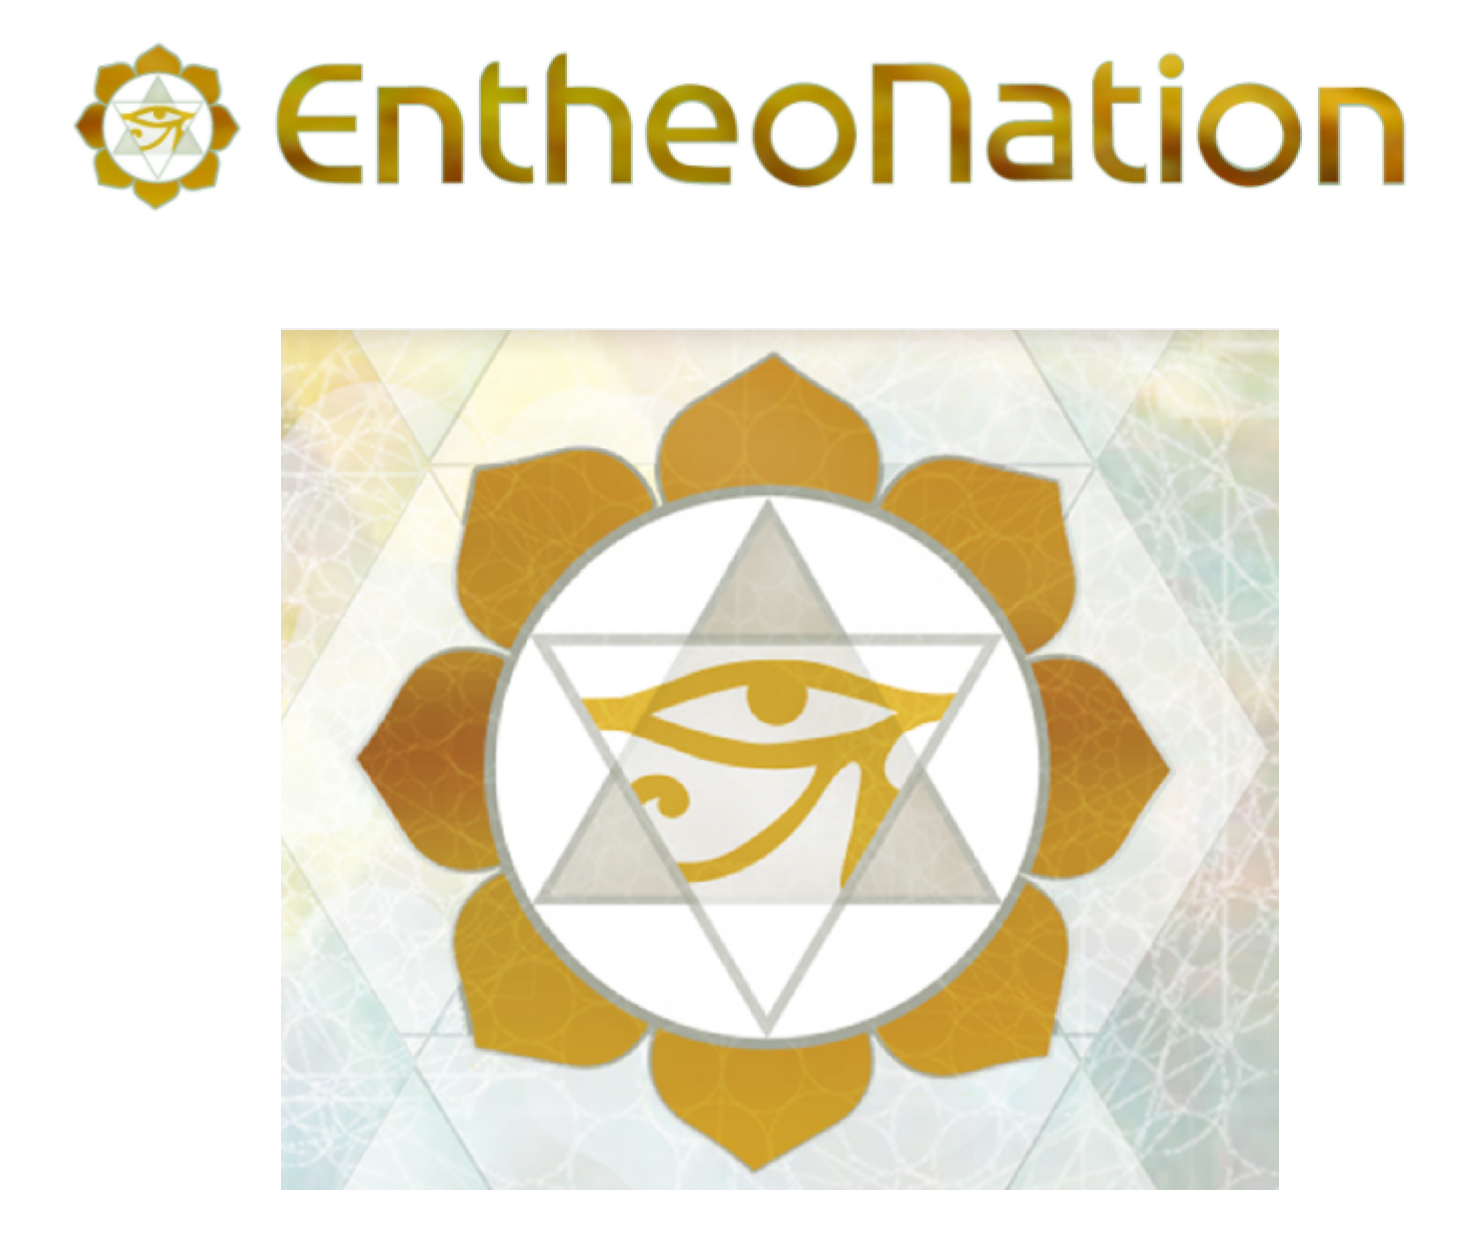 ENTHEONATION - Entheonation.com grew their traffic organically in the period of 3 months through consistent and qualitative content creation.Although results took for 3 months to show, their traffic has steadily increased without any further input.Sessions were increased by 45%, page views by 35% and are projected to grow further.In just 1 year we increased organic traffic by 1,800% & total traffic by 550%. This was done through onsite optimization, offsite optimization, content campaigns and strategic link-building.